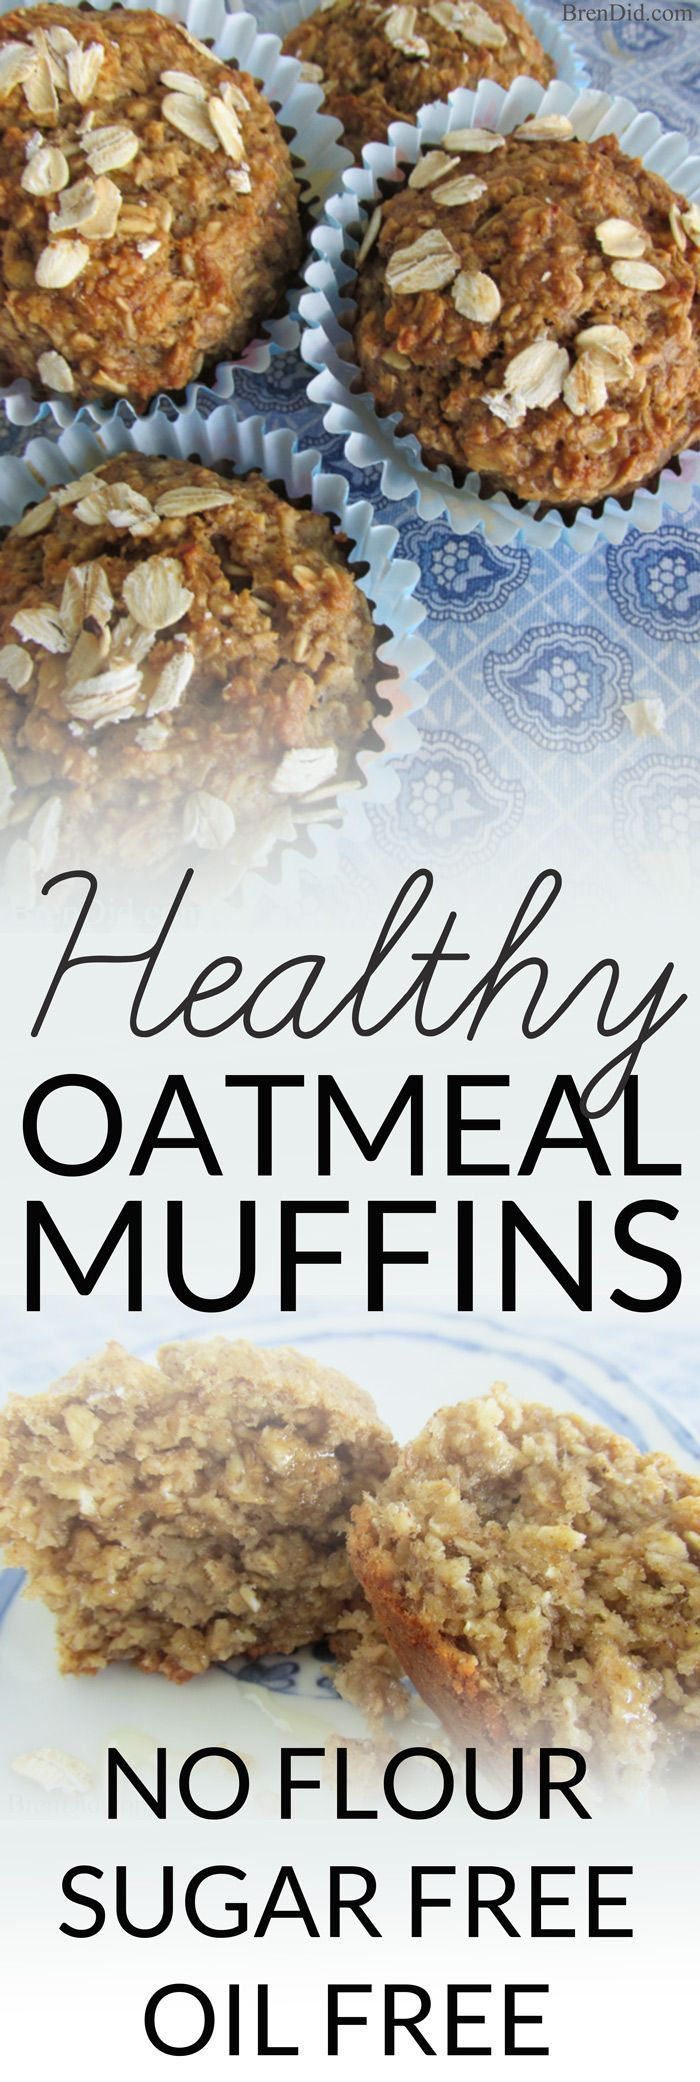 Healthy Oatmeal Muffins - Most muffins = junk food! These sound delicious plus no refined sugar, no oil and no flour. Must try! #guiltfree